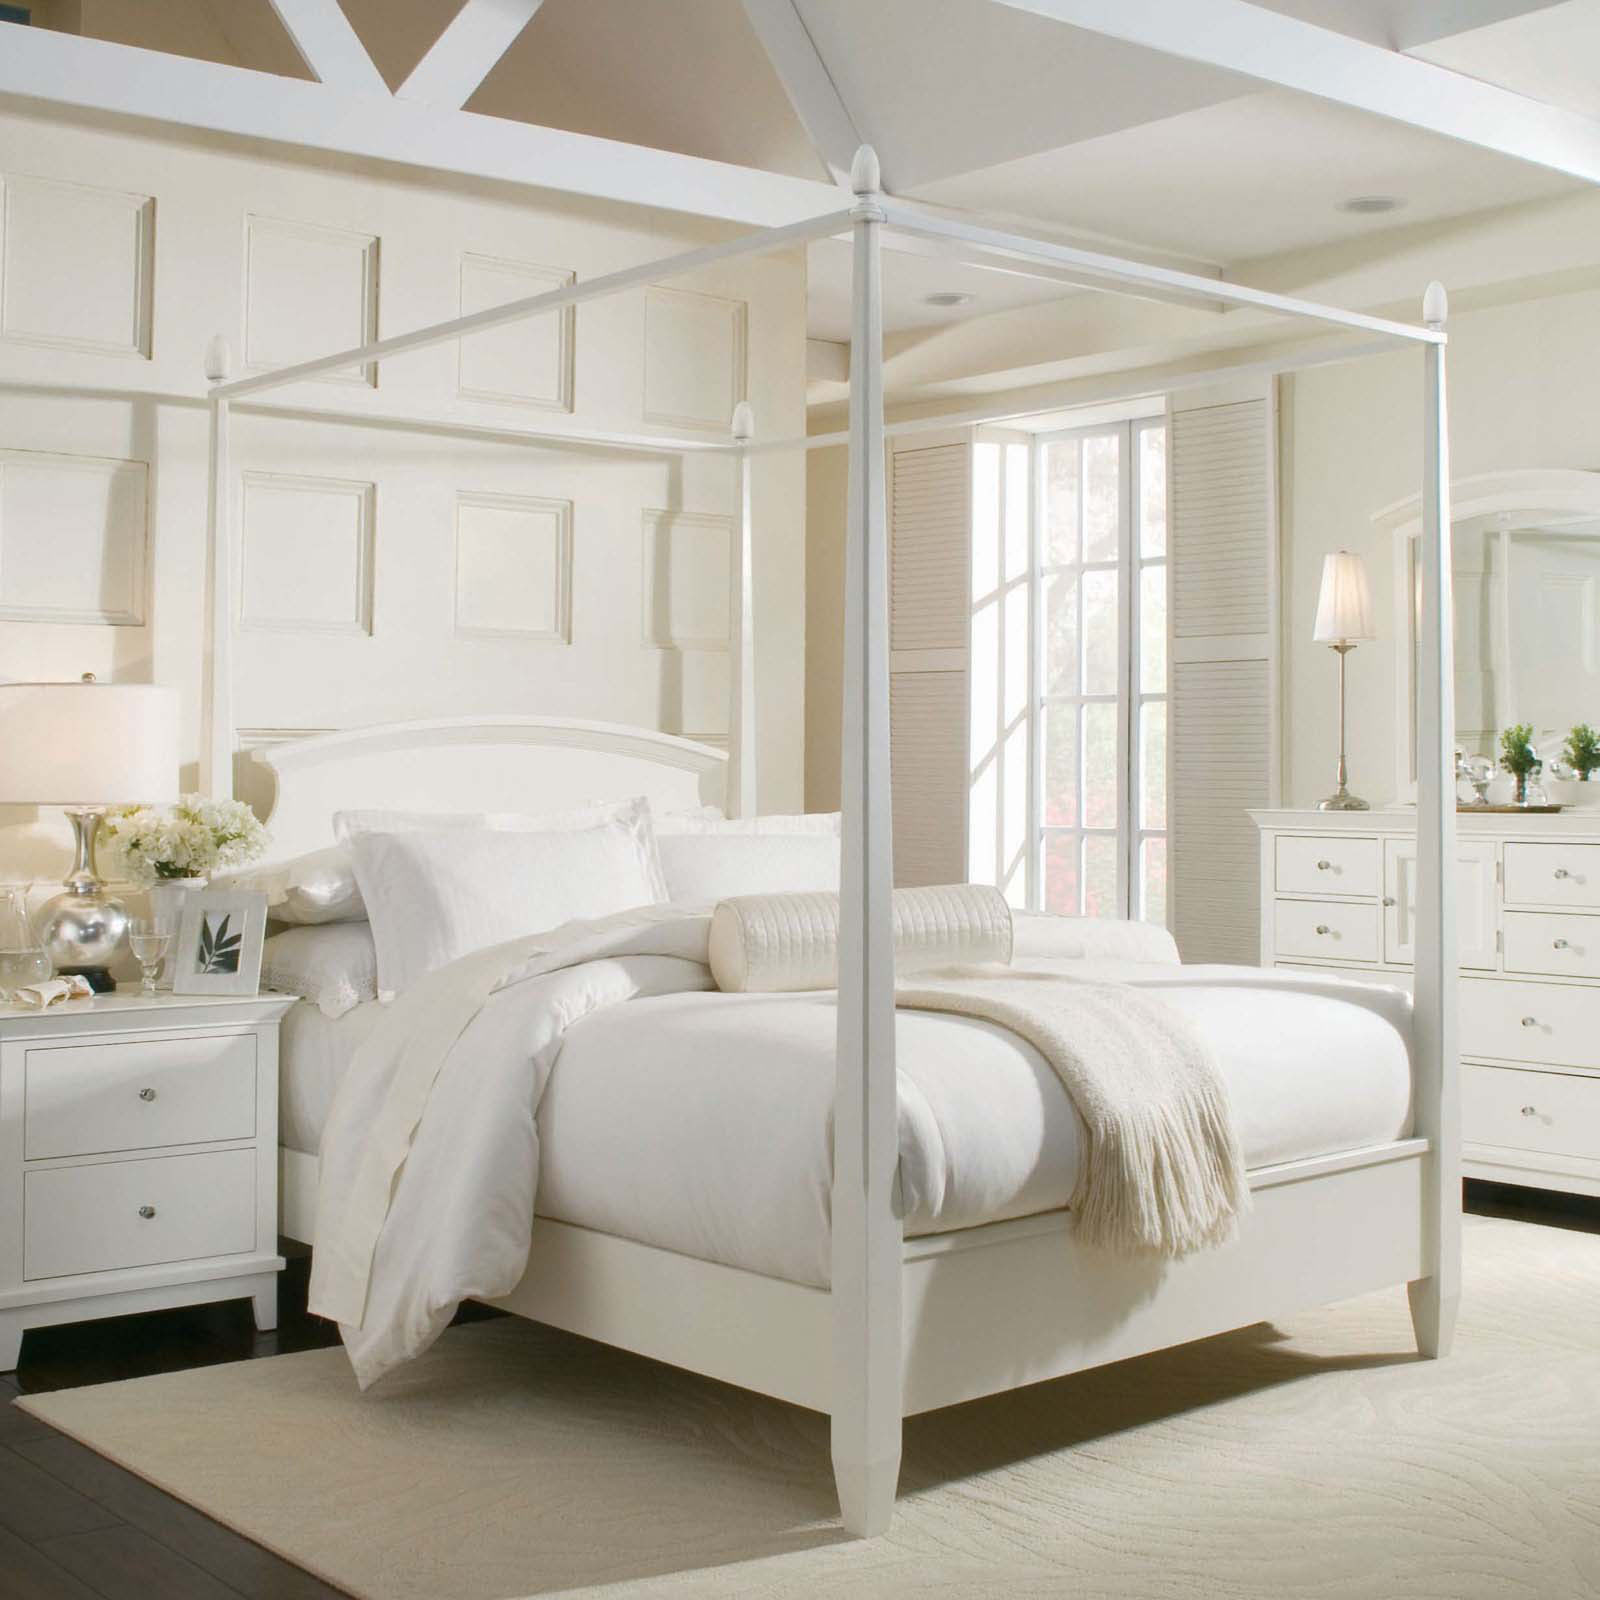 Canopy beds For the Modern Bedroom Freshome (24)